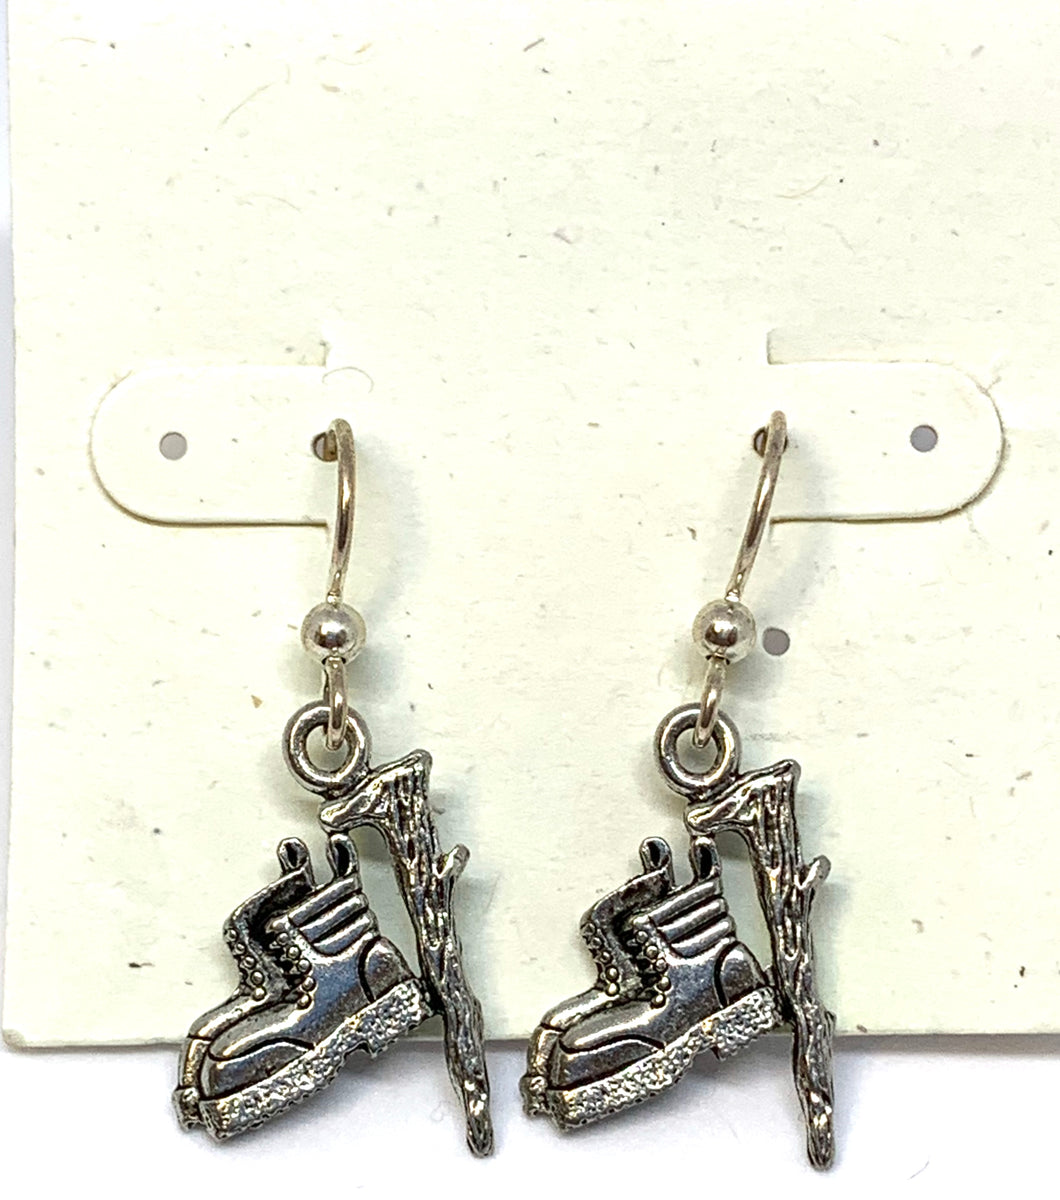 Hiking Boot with Walking Stick Earrings